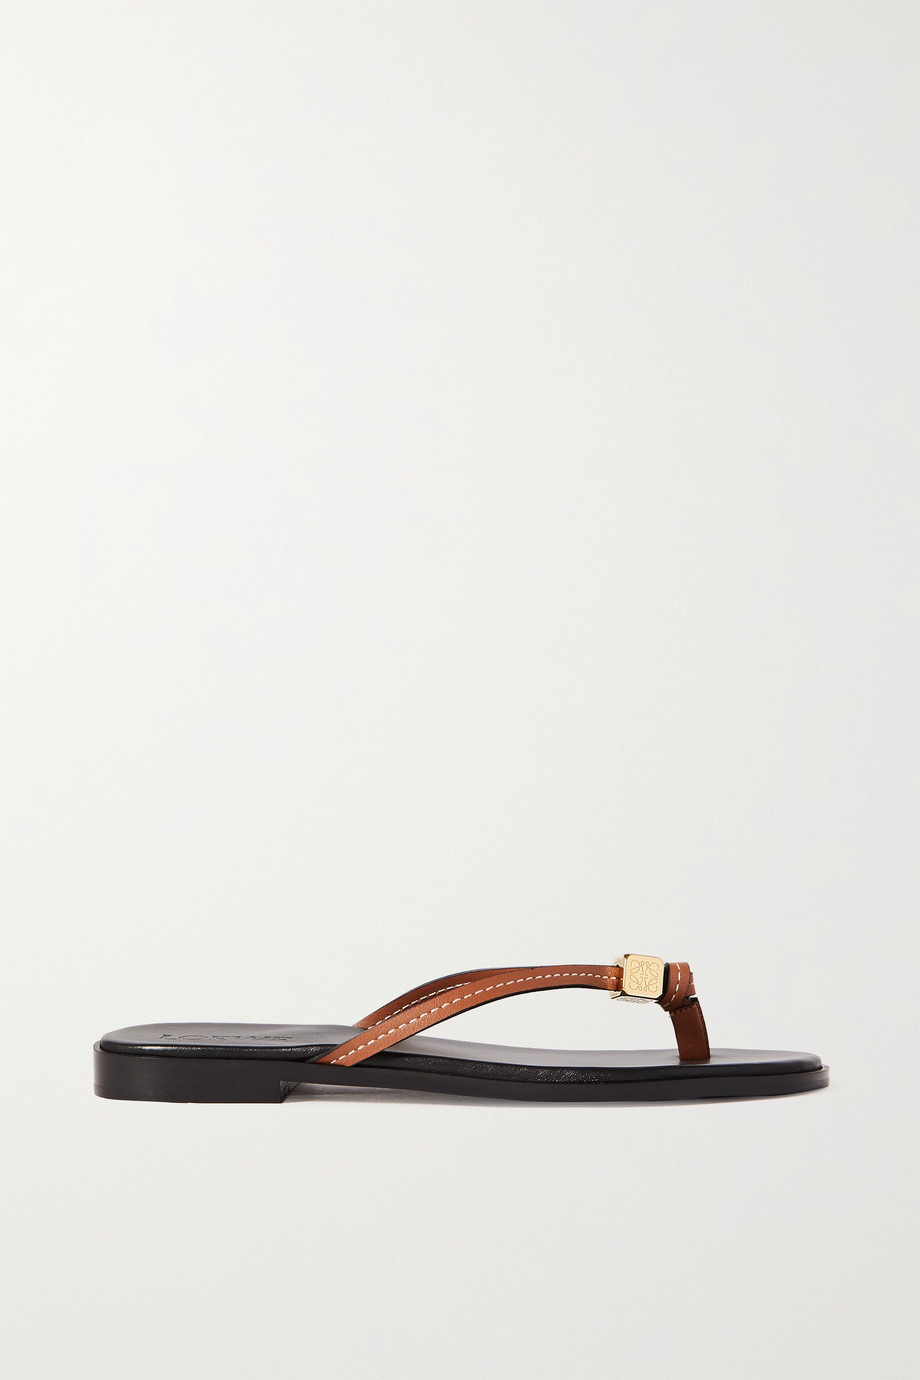 LOEWE + Paula's Ibiza Dice embellished leather flip flops